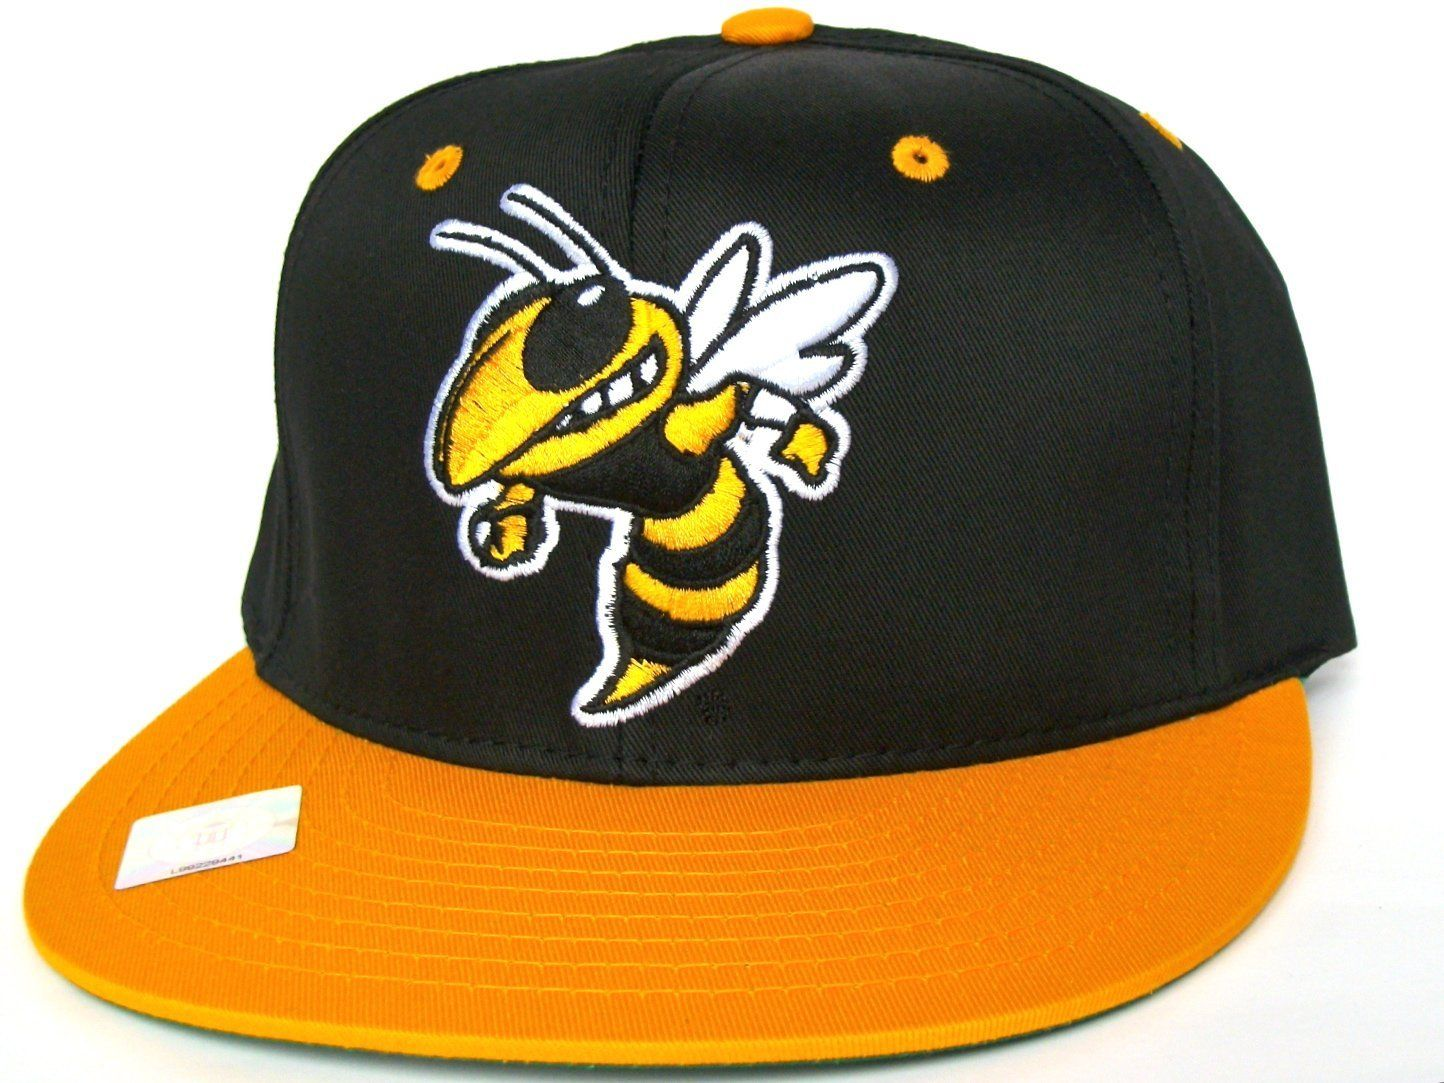 0dadca10b65 GEORGIA TECH YELLOW JACKETS Retro Old School Snapback Hat - NCAA Cap - Black  Gold  Amazon.co.uk  Amazon.co.uk